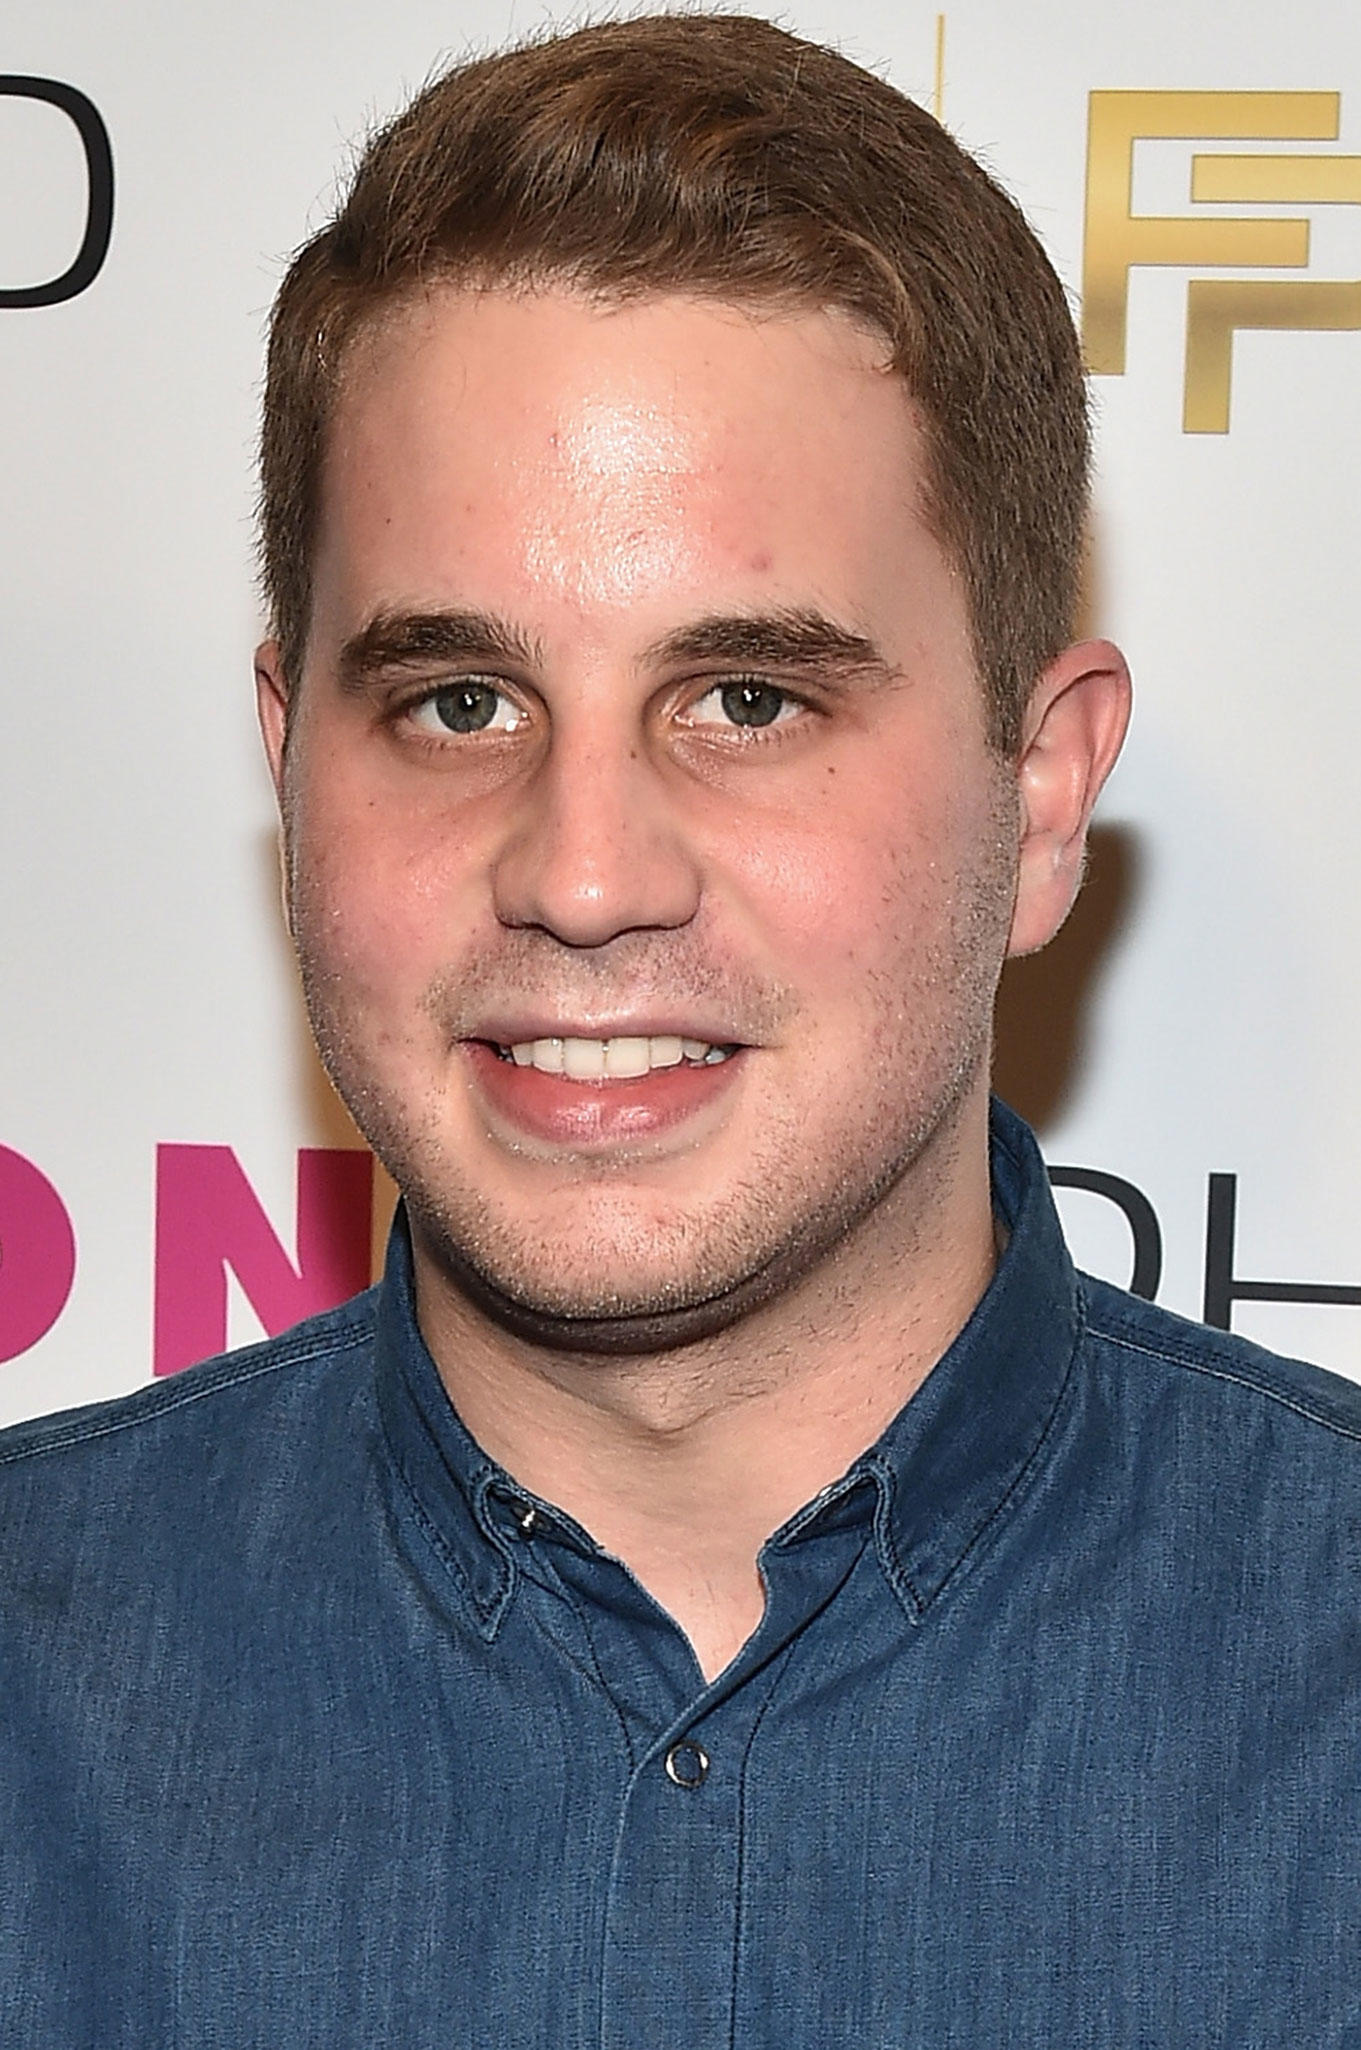 Ben Platt at E!, 'Fashion Police' and NYLON kick-off New York Fashion Week.